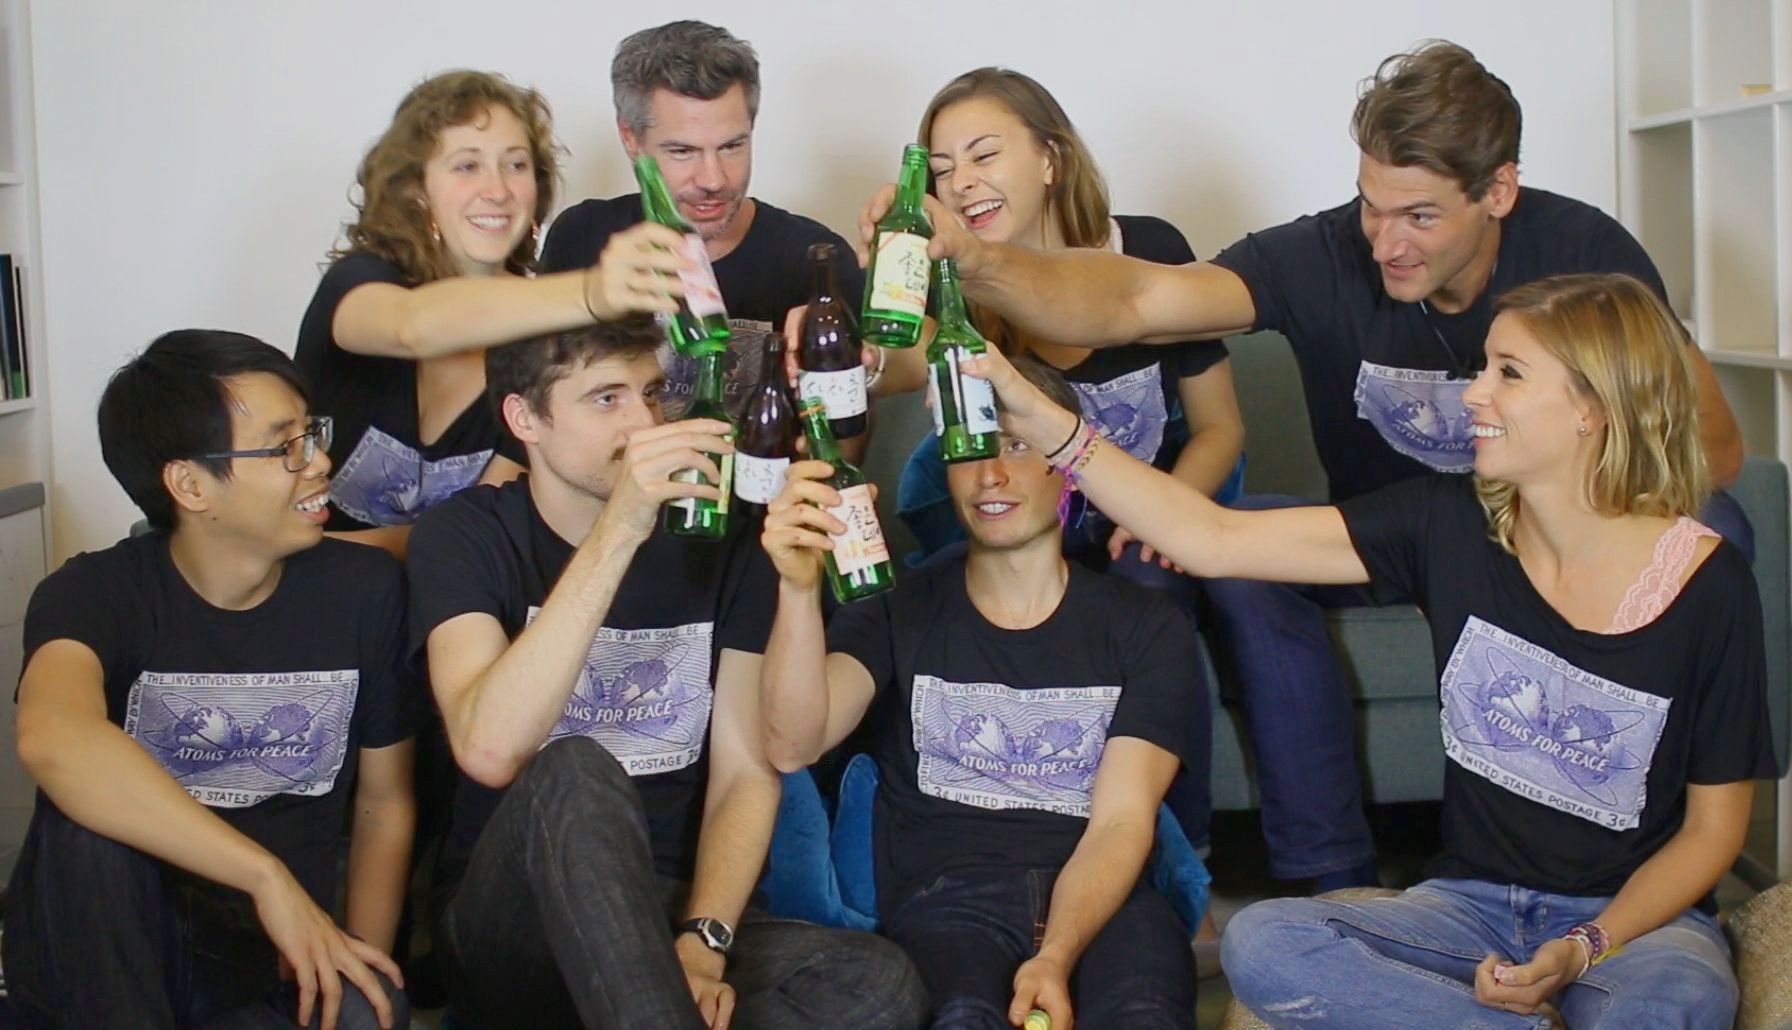 EP staff toasts South Koreans (with soju) for landslide pro-nuclear victory.